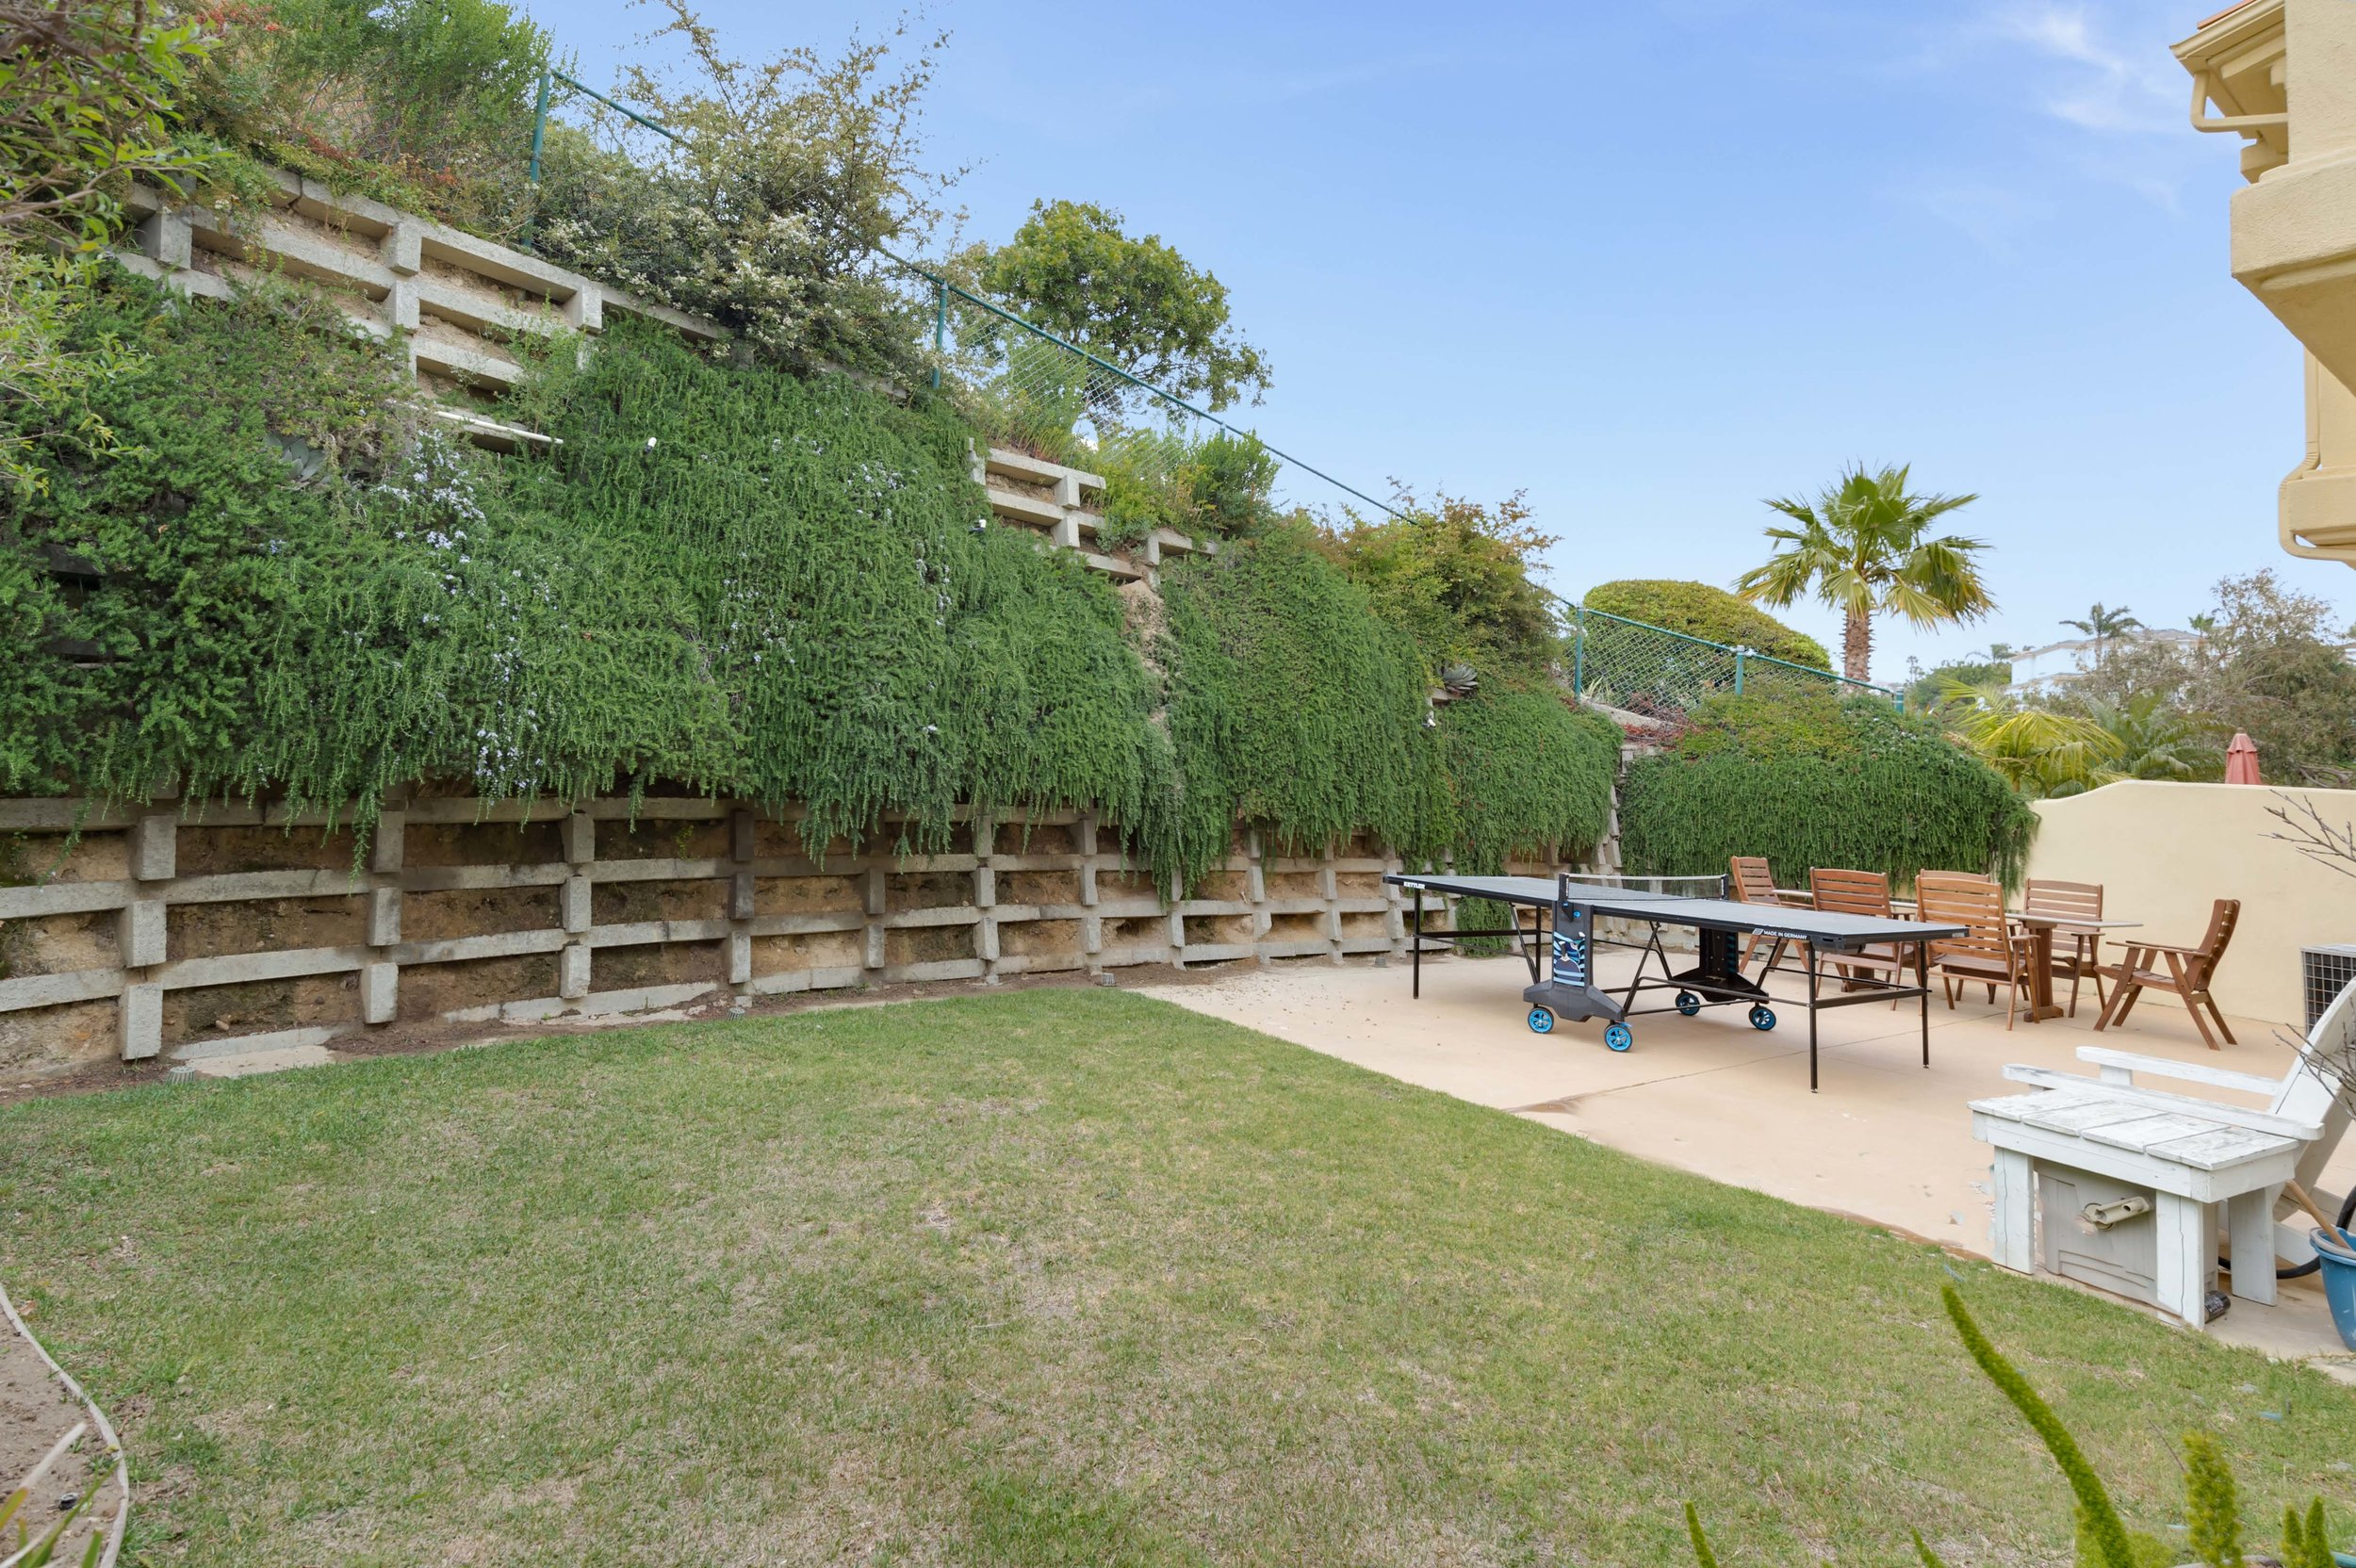 006 back 3 6463 Zuma View Place Malibu For Sale The Malibu Life Team Luxury Real Estate.jpg